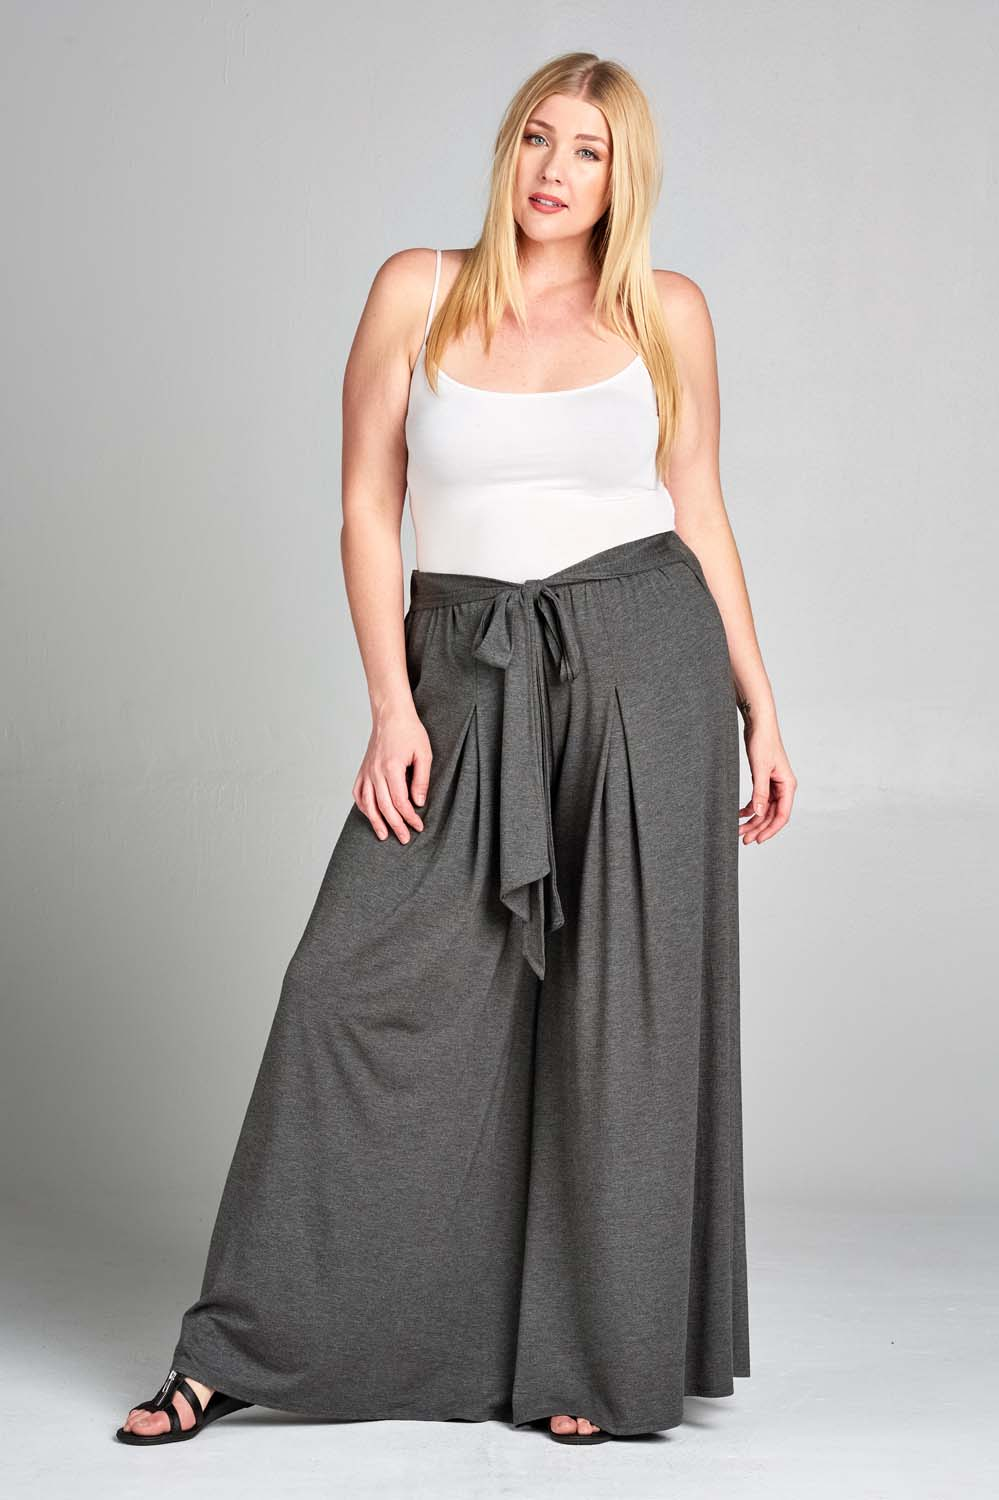 Rayon High Waisted Palazzo Pants - Charcoal - Emerald Curve